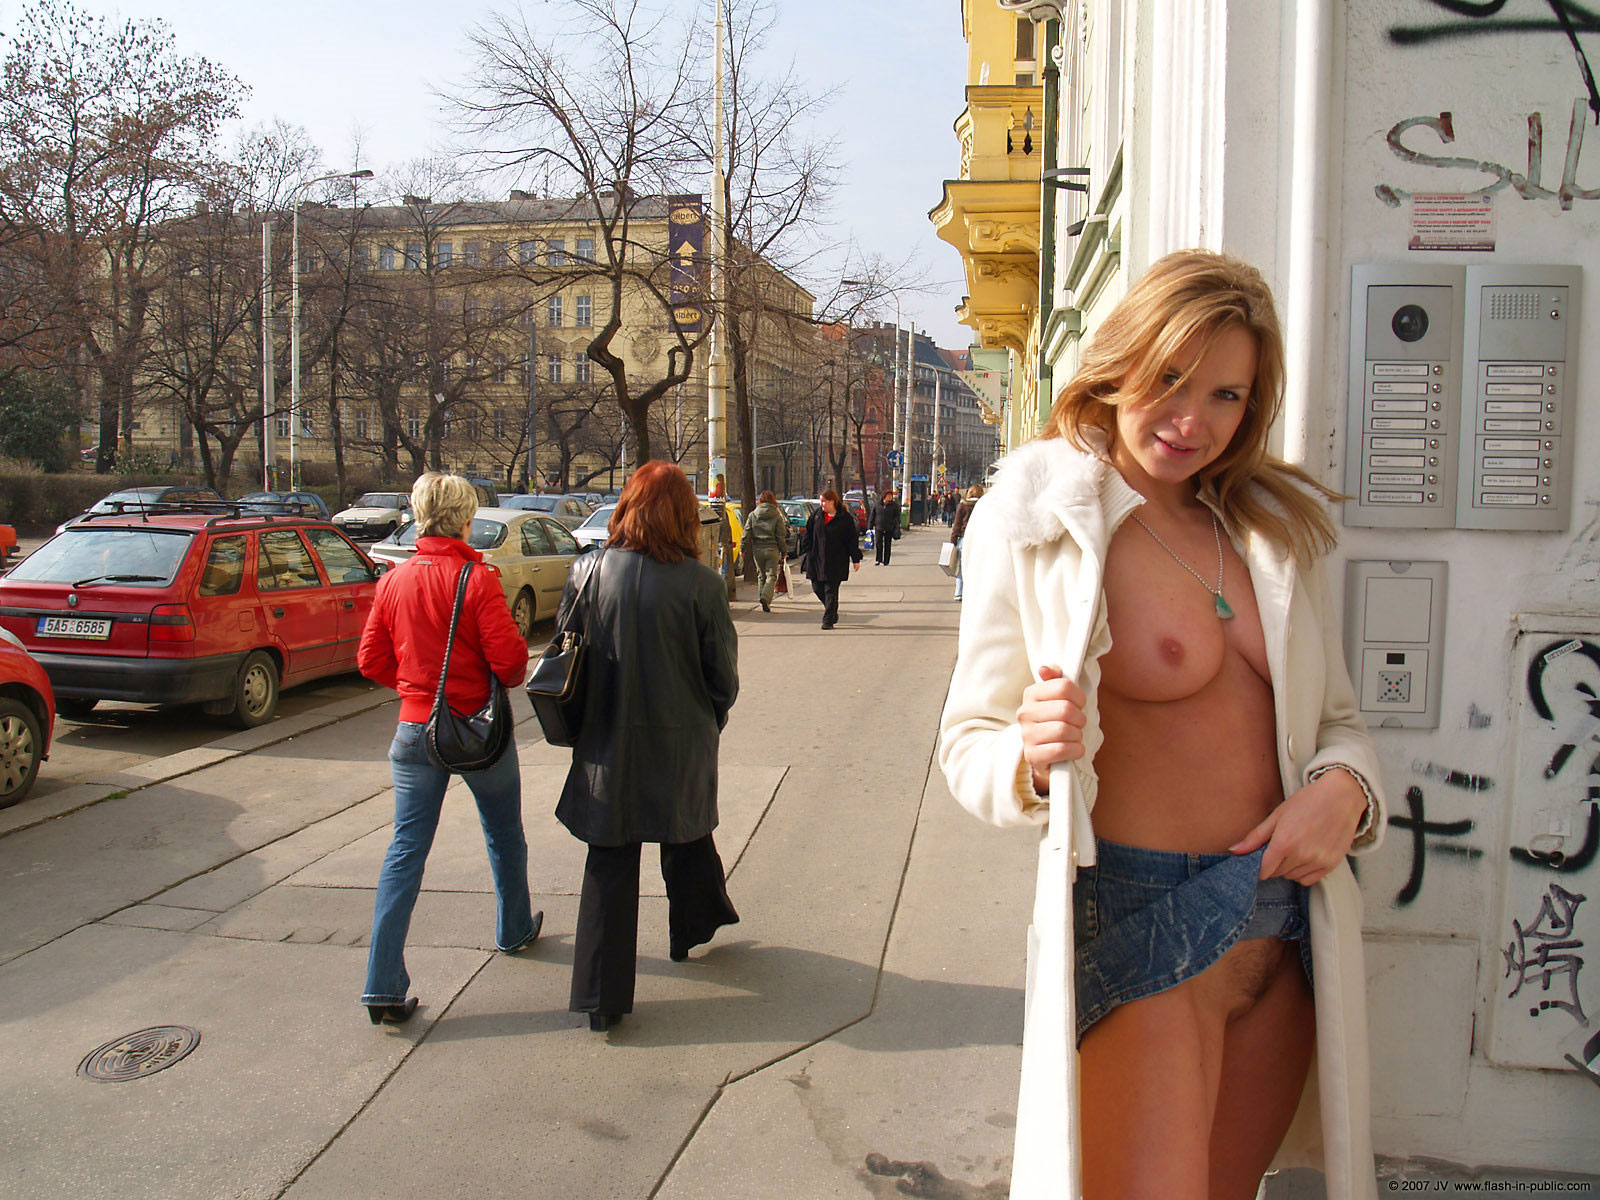 alena-n-jeans-skirt-nude-in-prague-flash-in-public-45